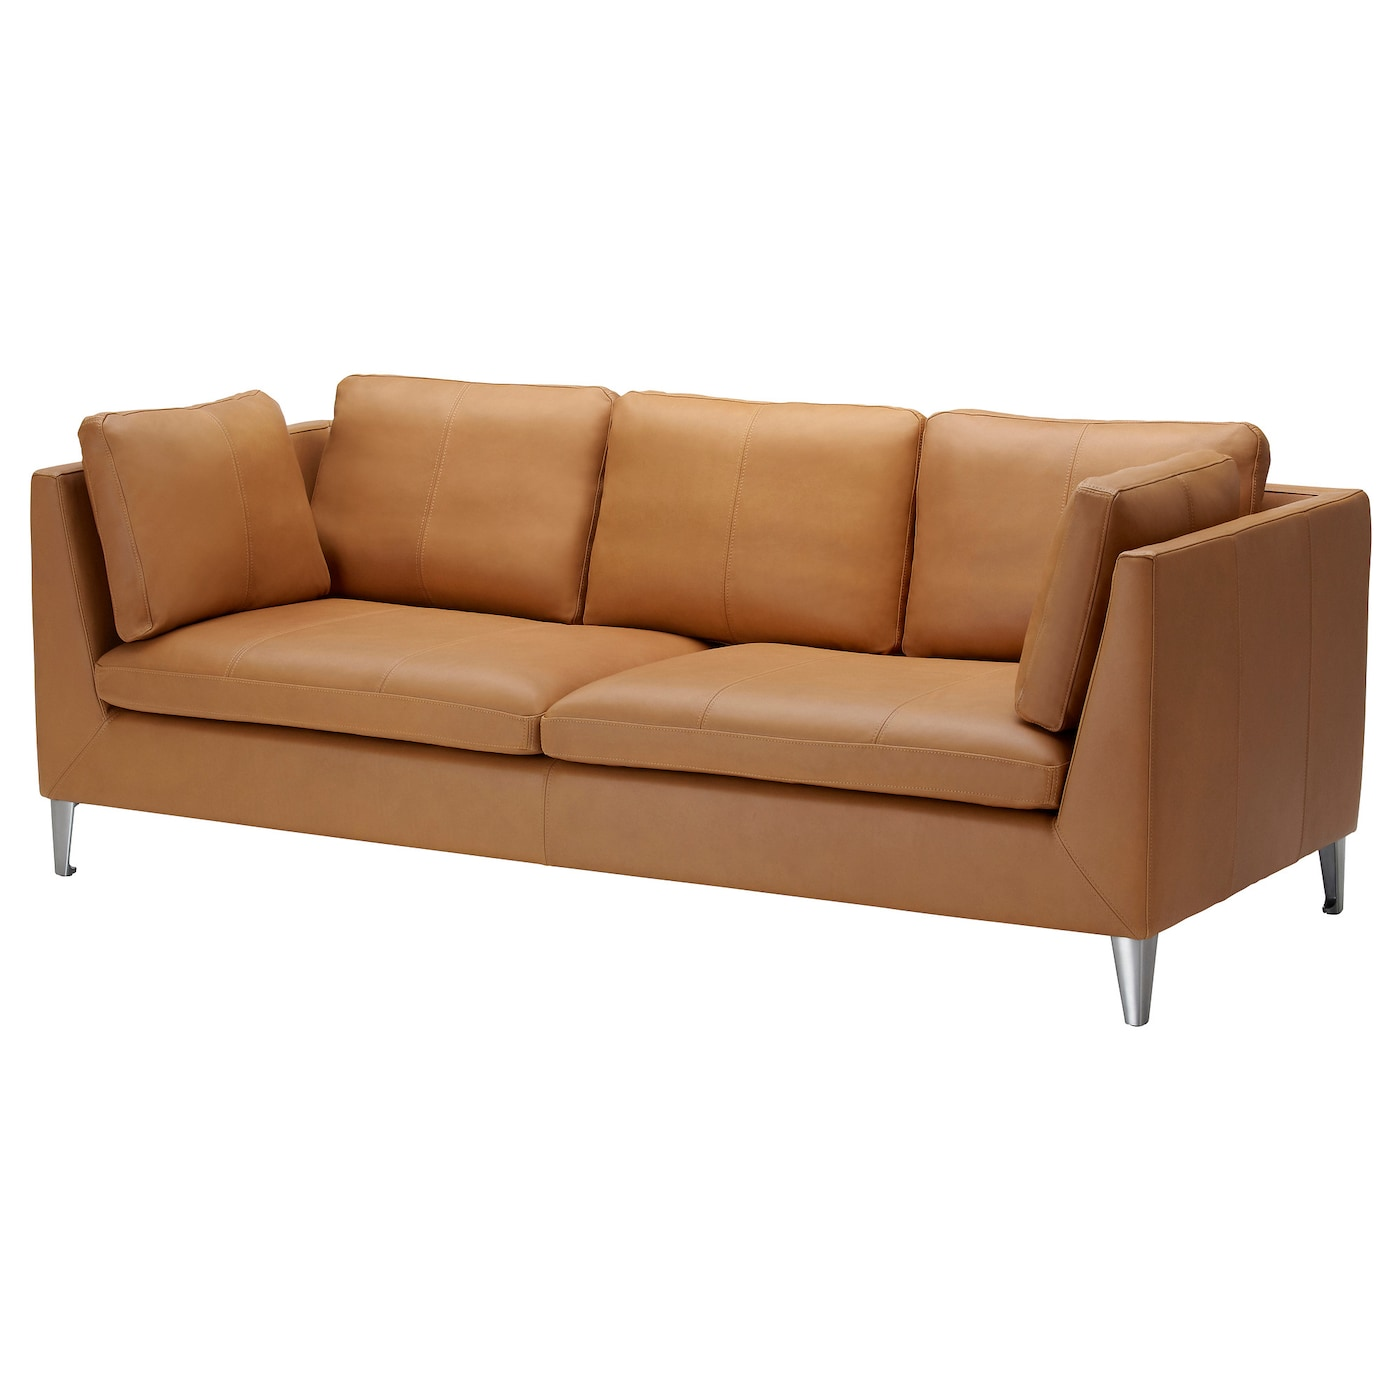 Stockholm three seat sofa seglora natural ikea - Bank beige ikea ...